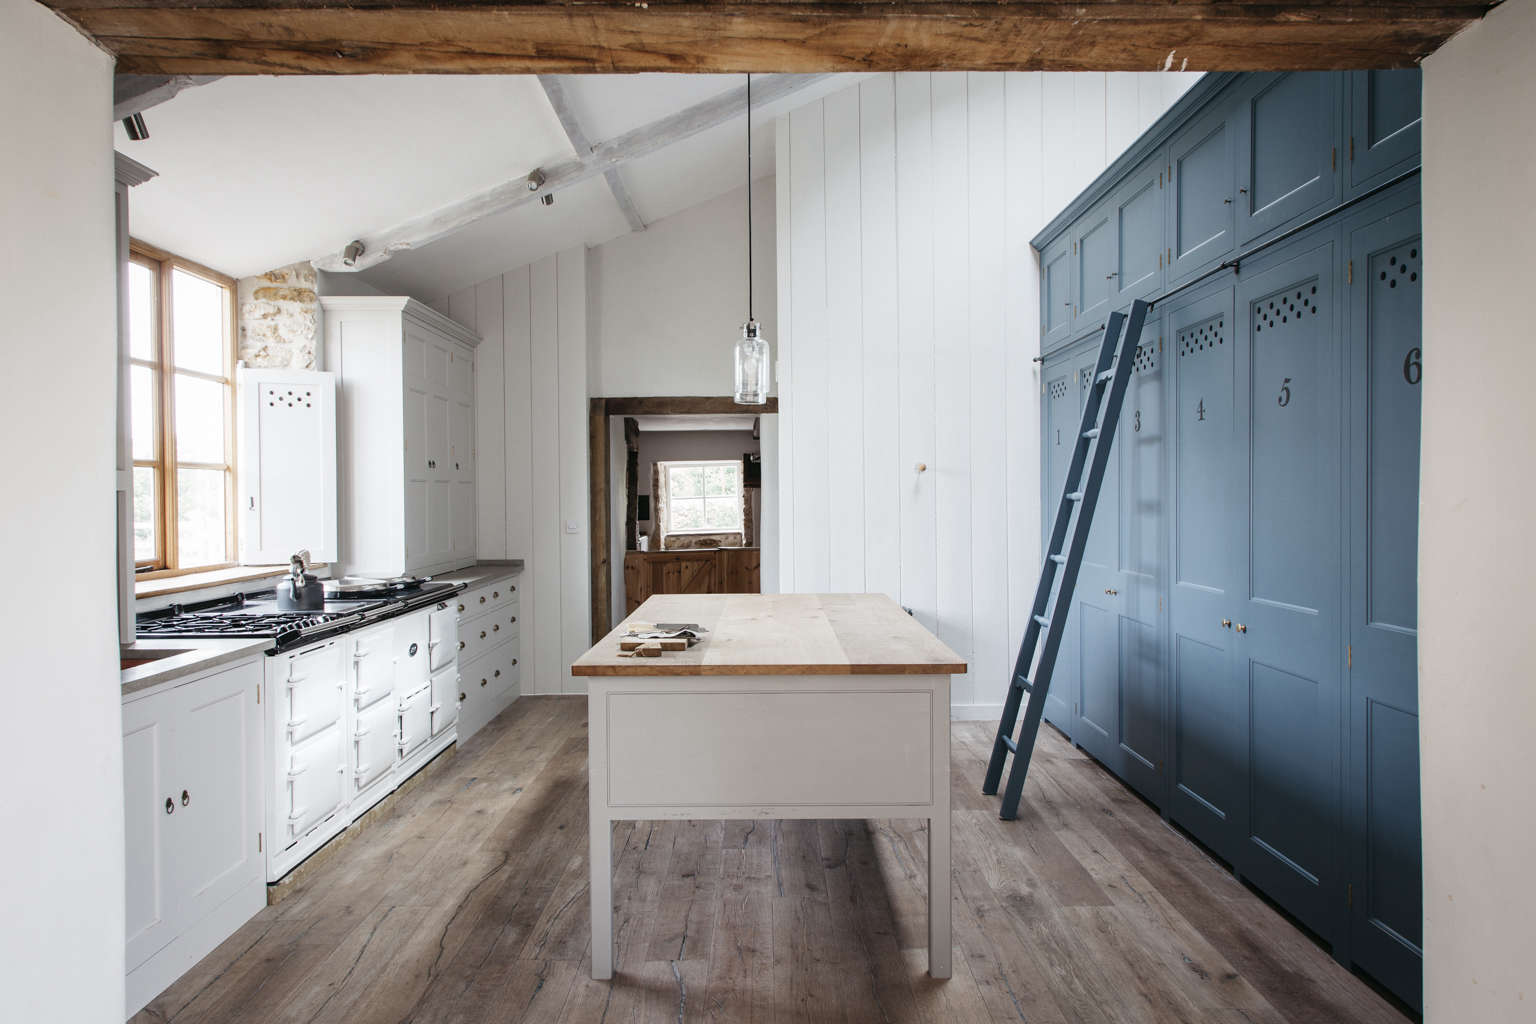 Pnc Real Estate Newsfeed Kitchen Of The Week The Plain English